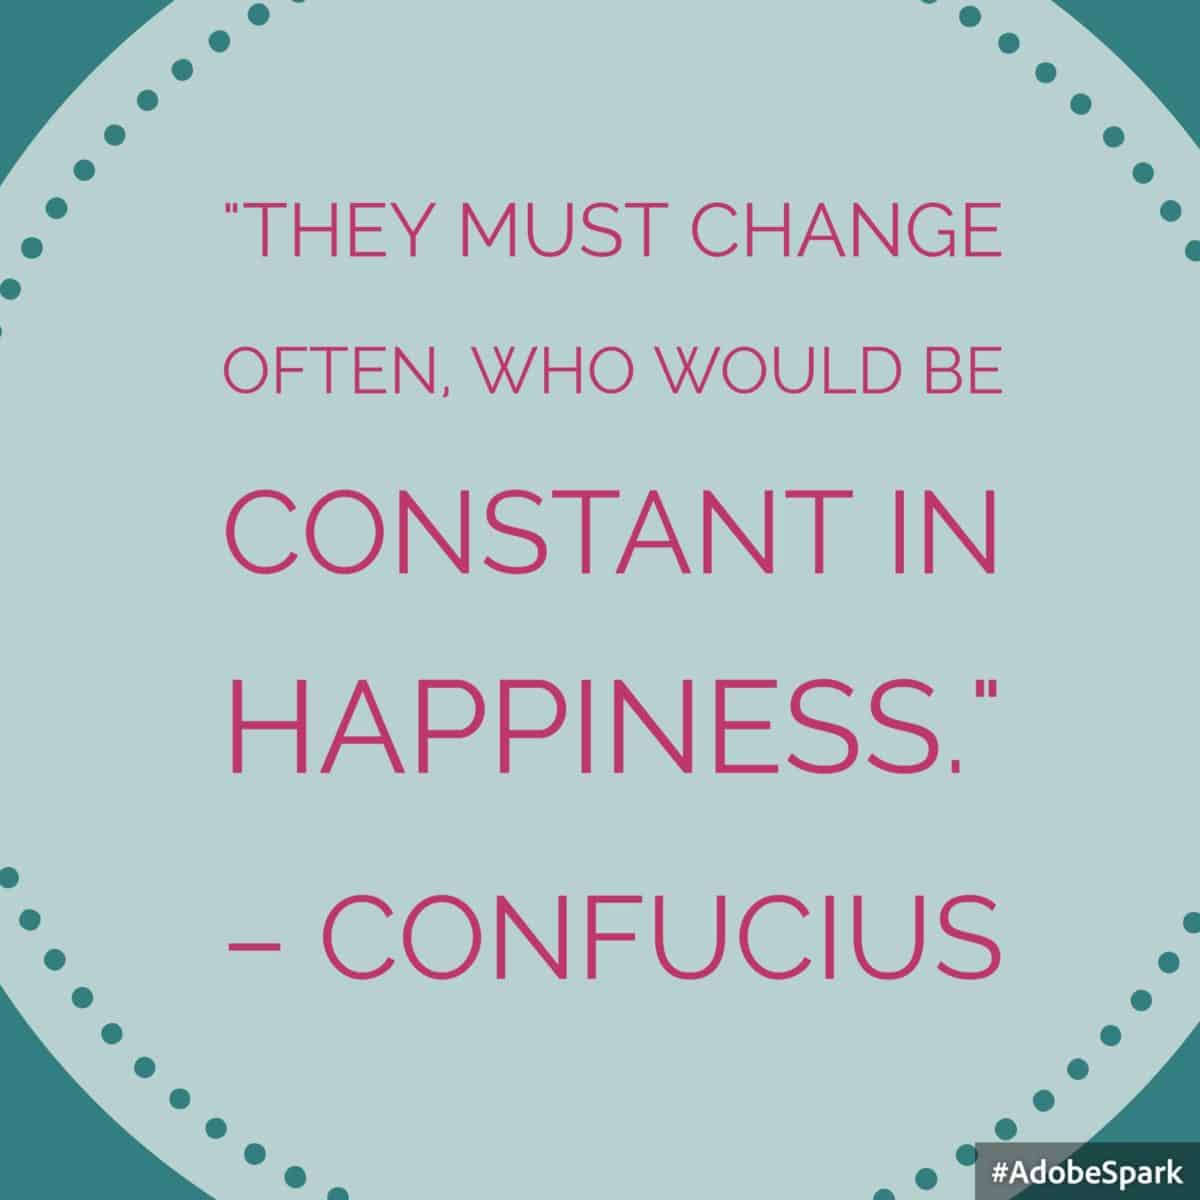 """""""They must change often, who would be constant in happiness."""" – Confucius 